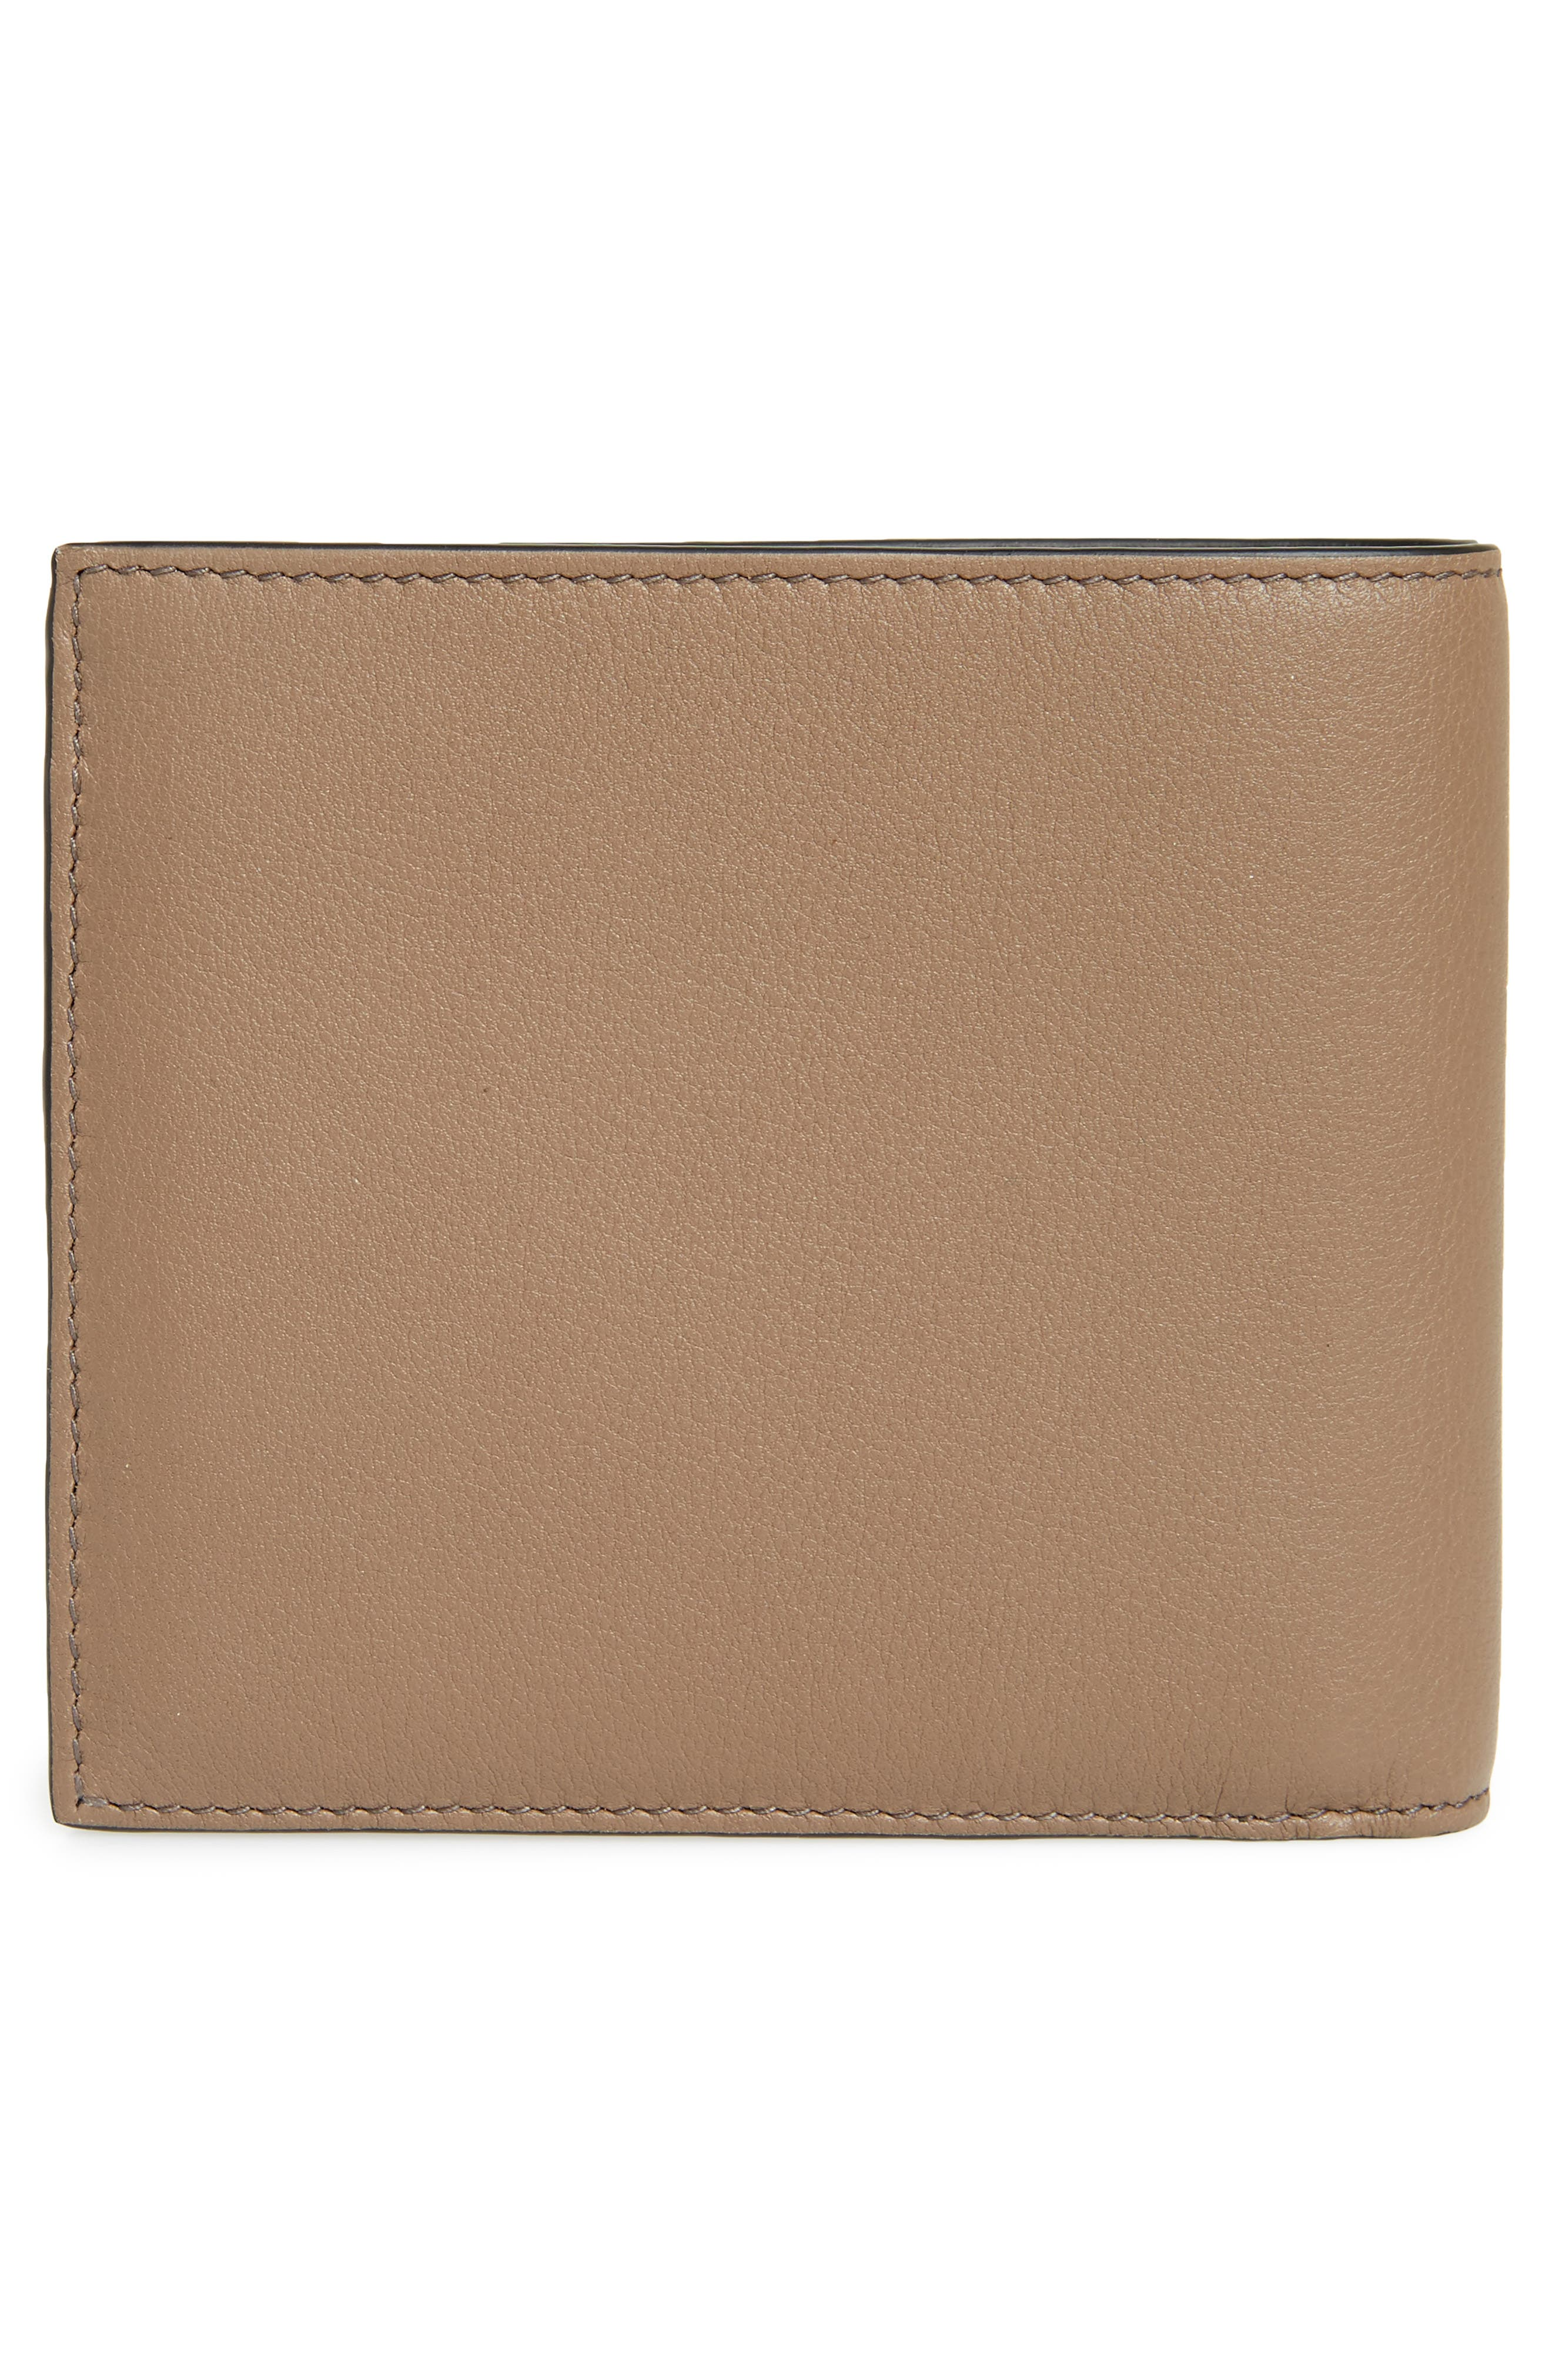 Skull Leather Bifold Wallet,                             Alternate thumbnail 3, color,                             Dark Taupe/ Tan/ White